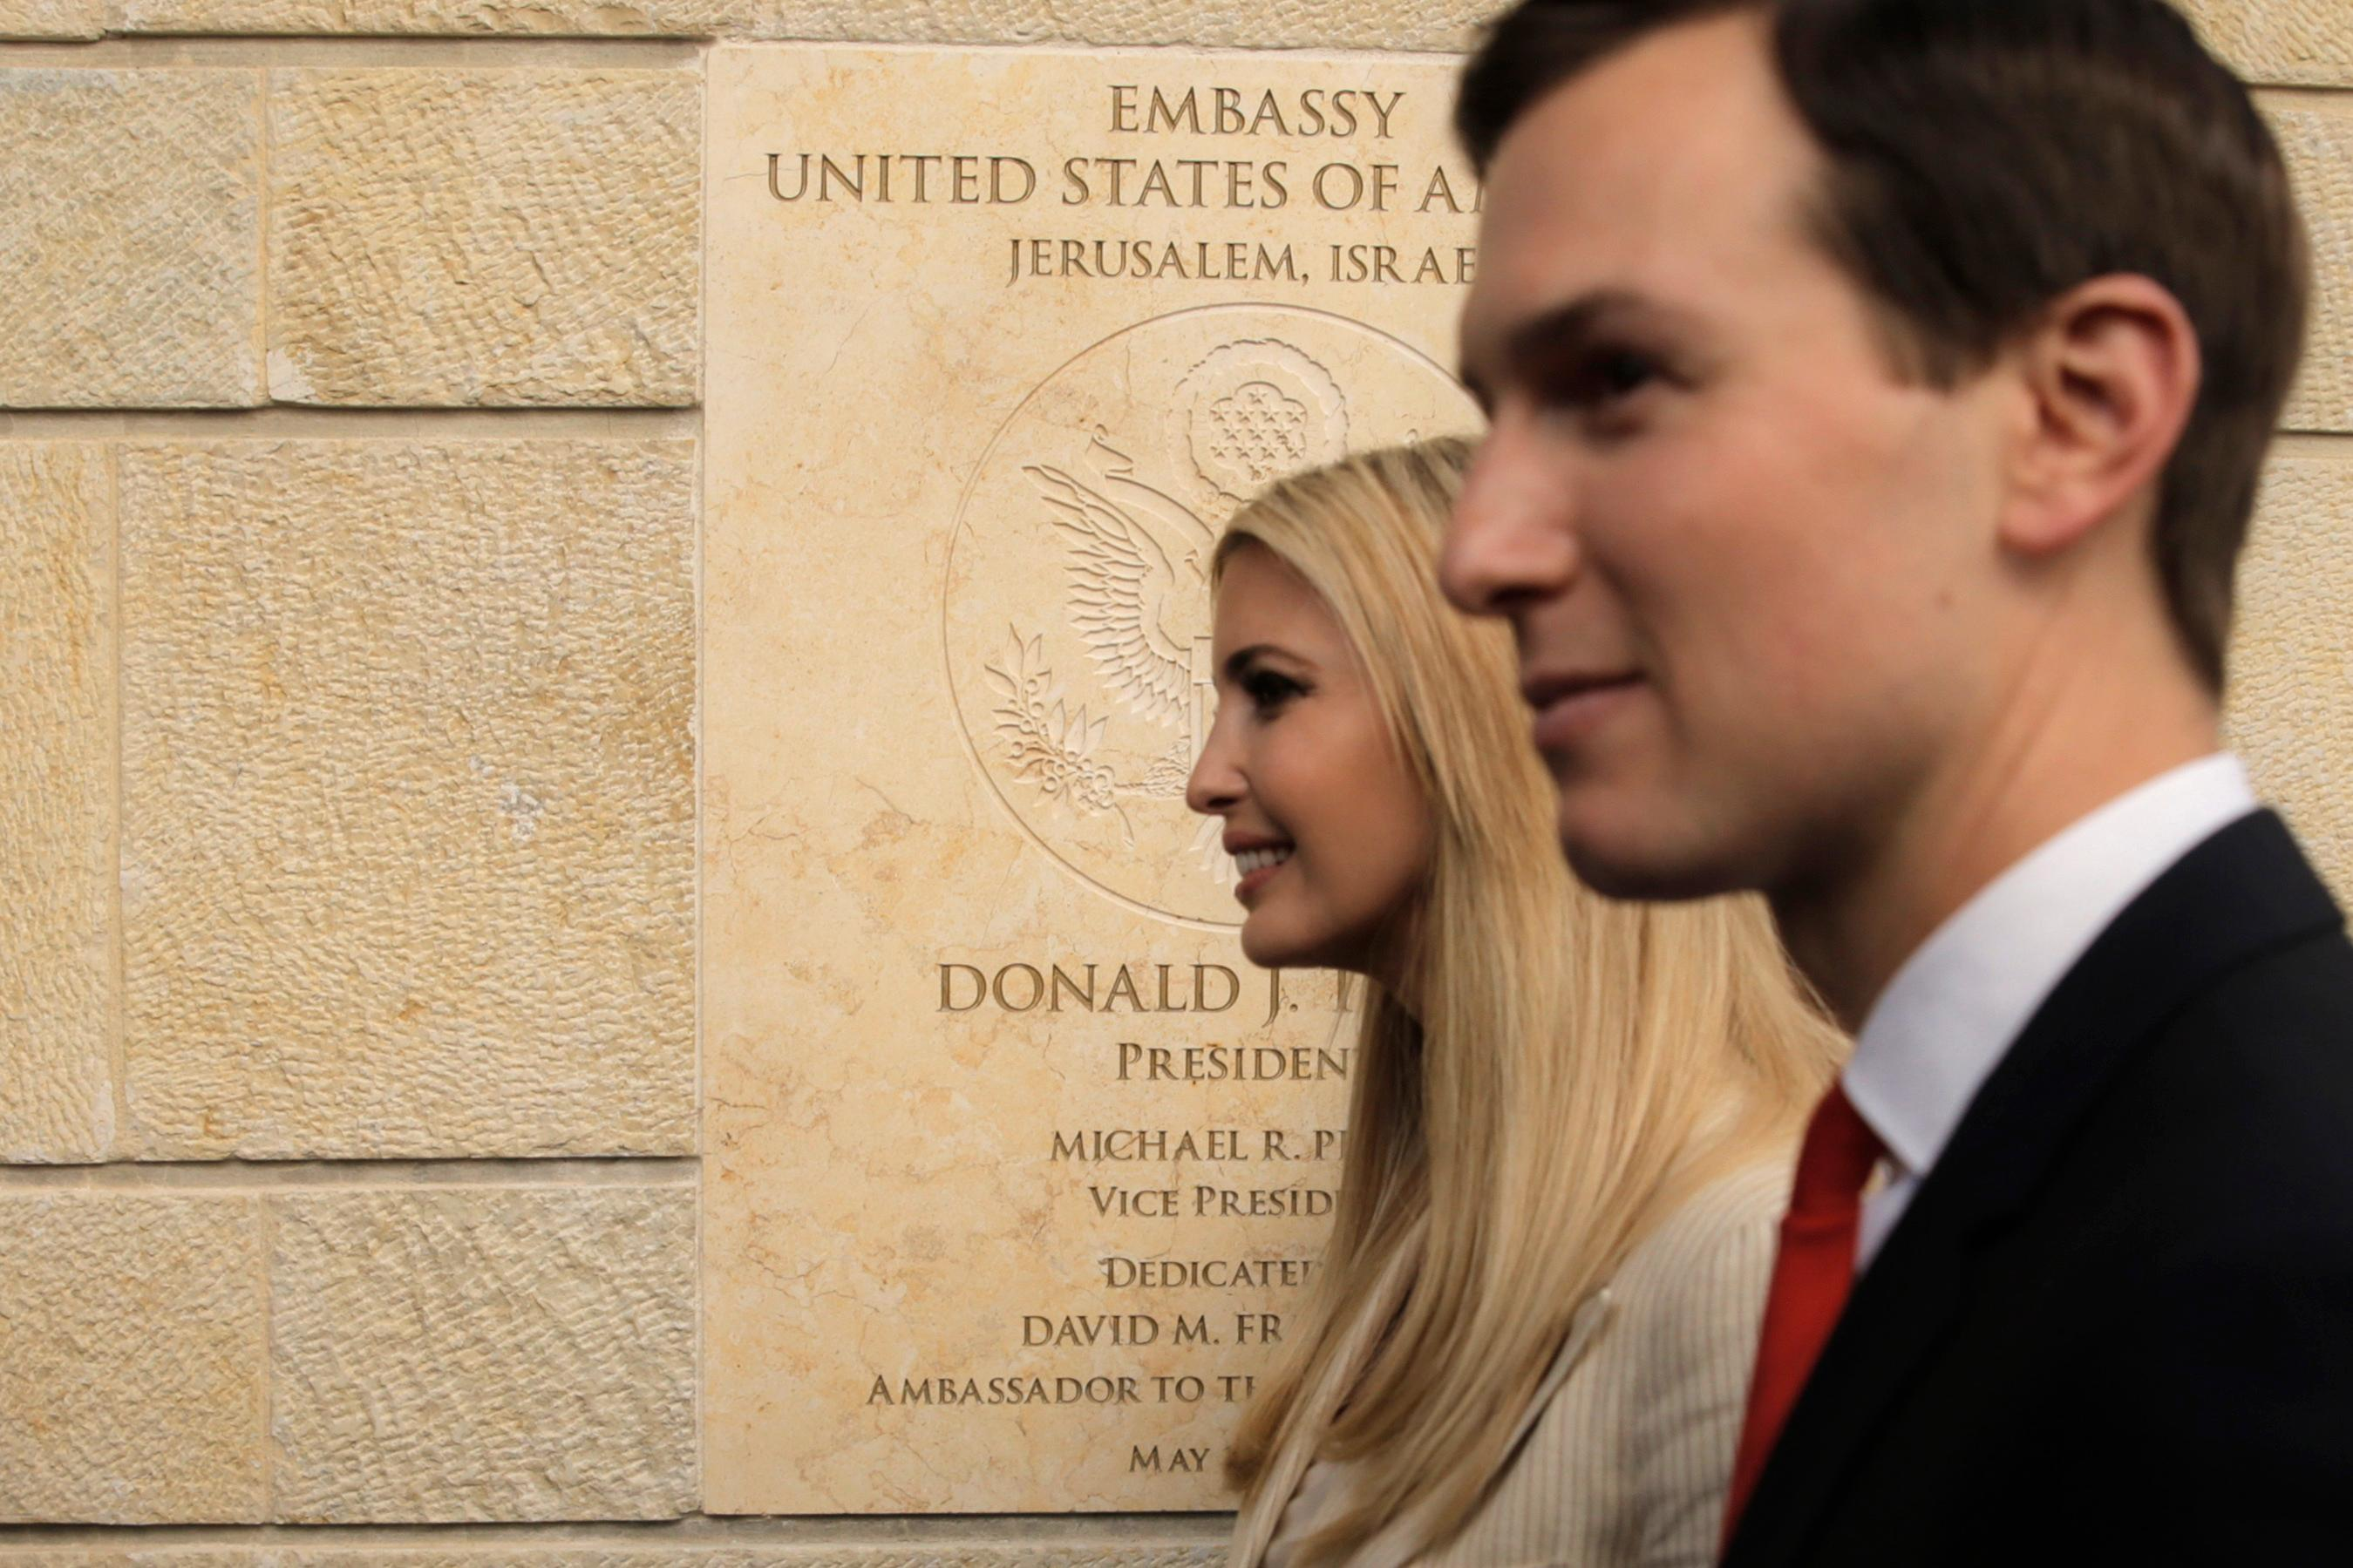 U.S. President Donald Trump's daughter Ivanka, left, and White House senior adviser Jared Kushner attends the opening ceremony of the new U.S. Embassy in Jerusalem, Monday, May 14, 2018. Amid deadly clashes along the Israeli-Palestinian border, President Donald Trump's top aides and supporters on Monday celebrated the opening of the new U.S. Embassy in Jerusalem as a campaign promised fulfilled. (AP Photo/Sebastian Scheiner)